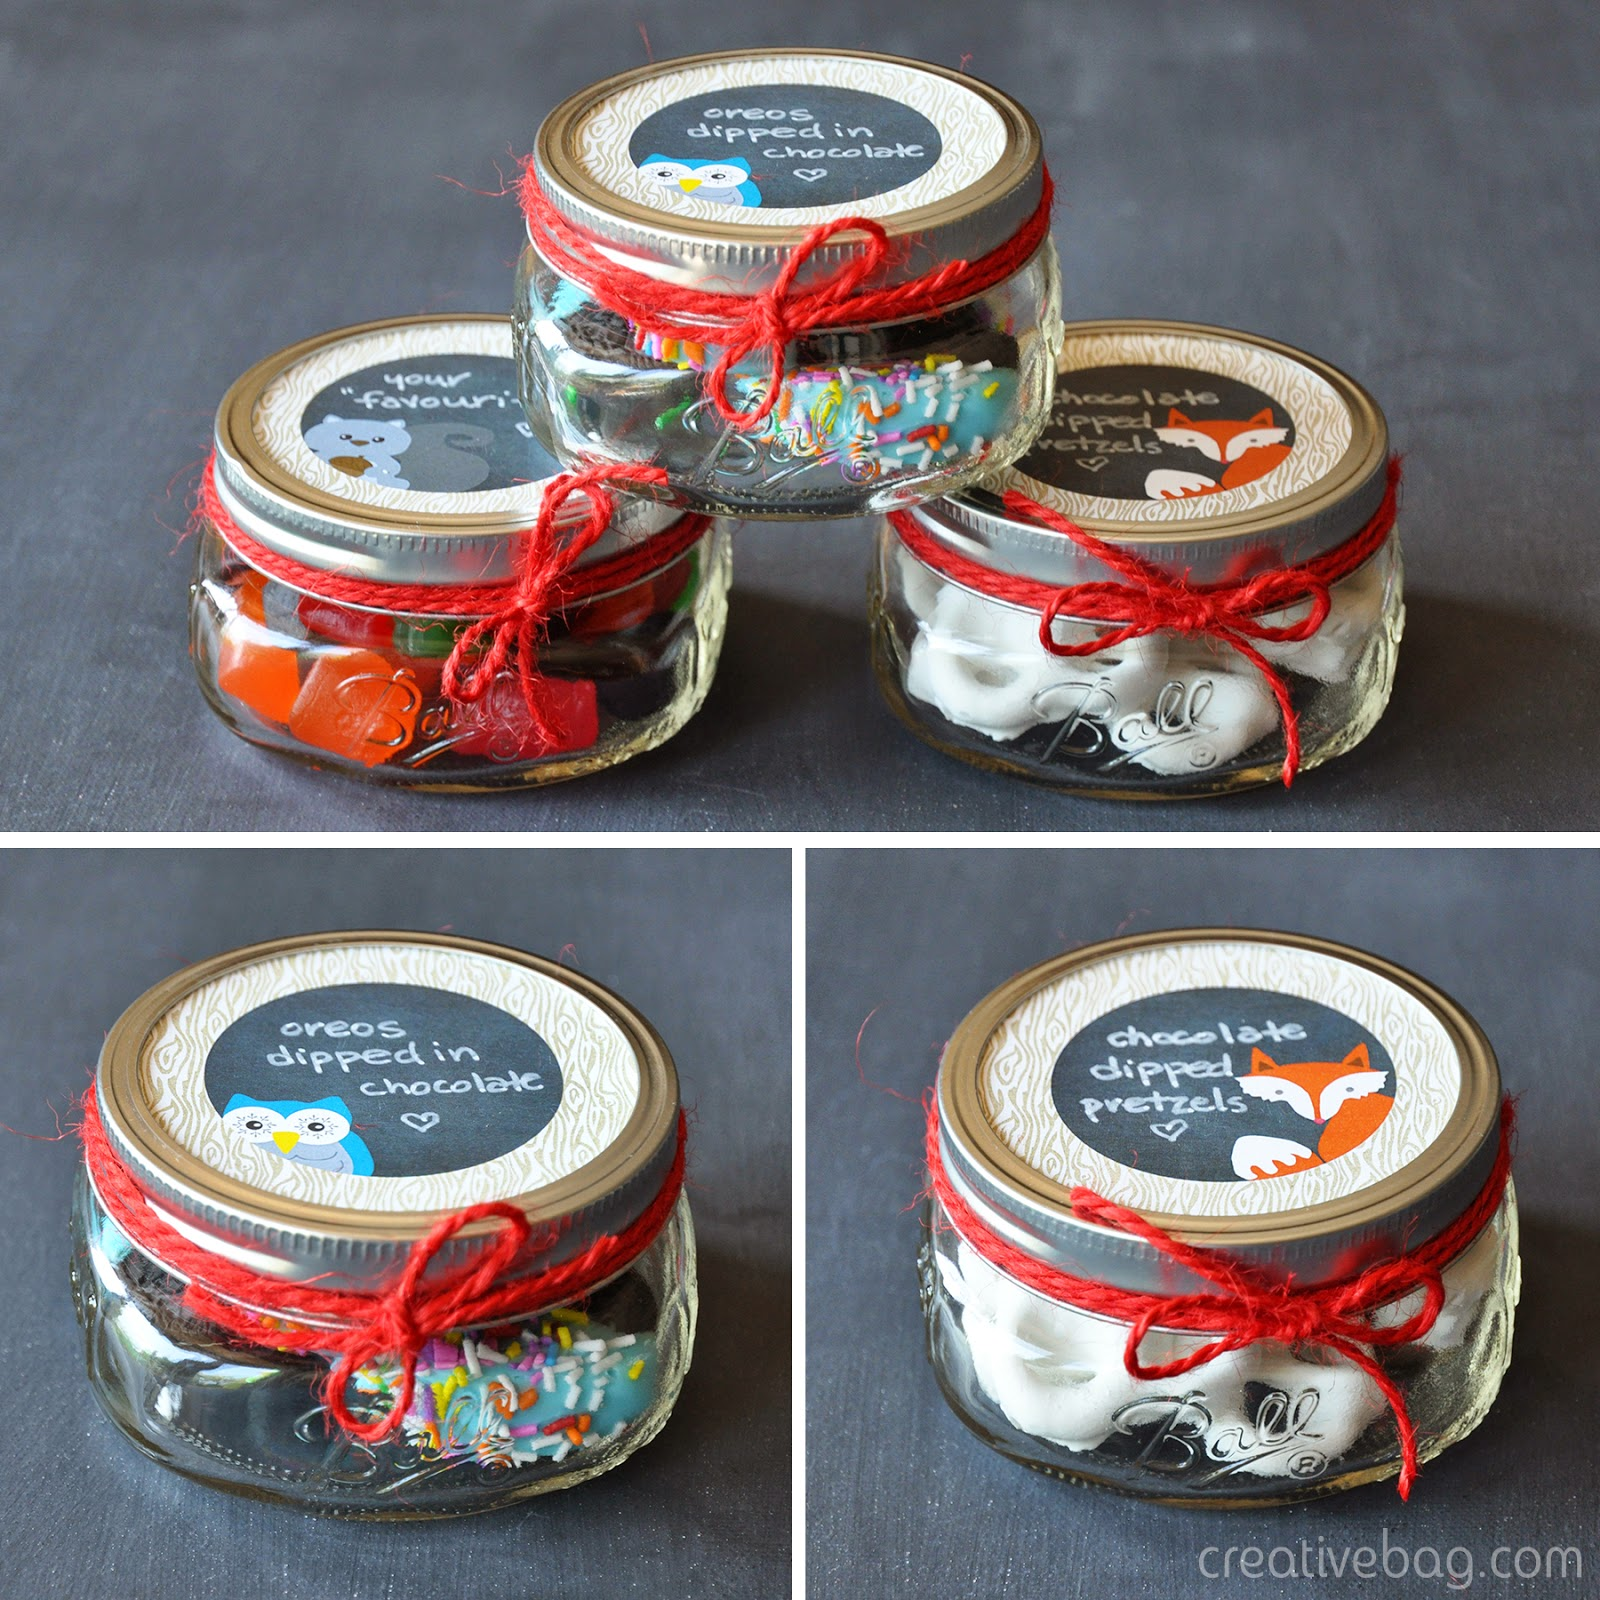 free printables and gift giving ideas using mason jars with Creative Bag